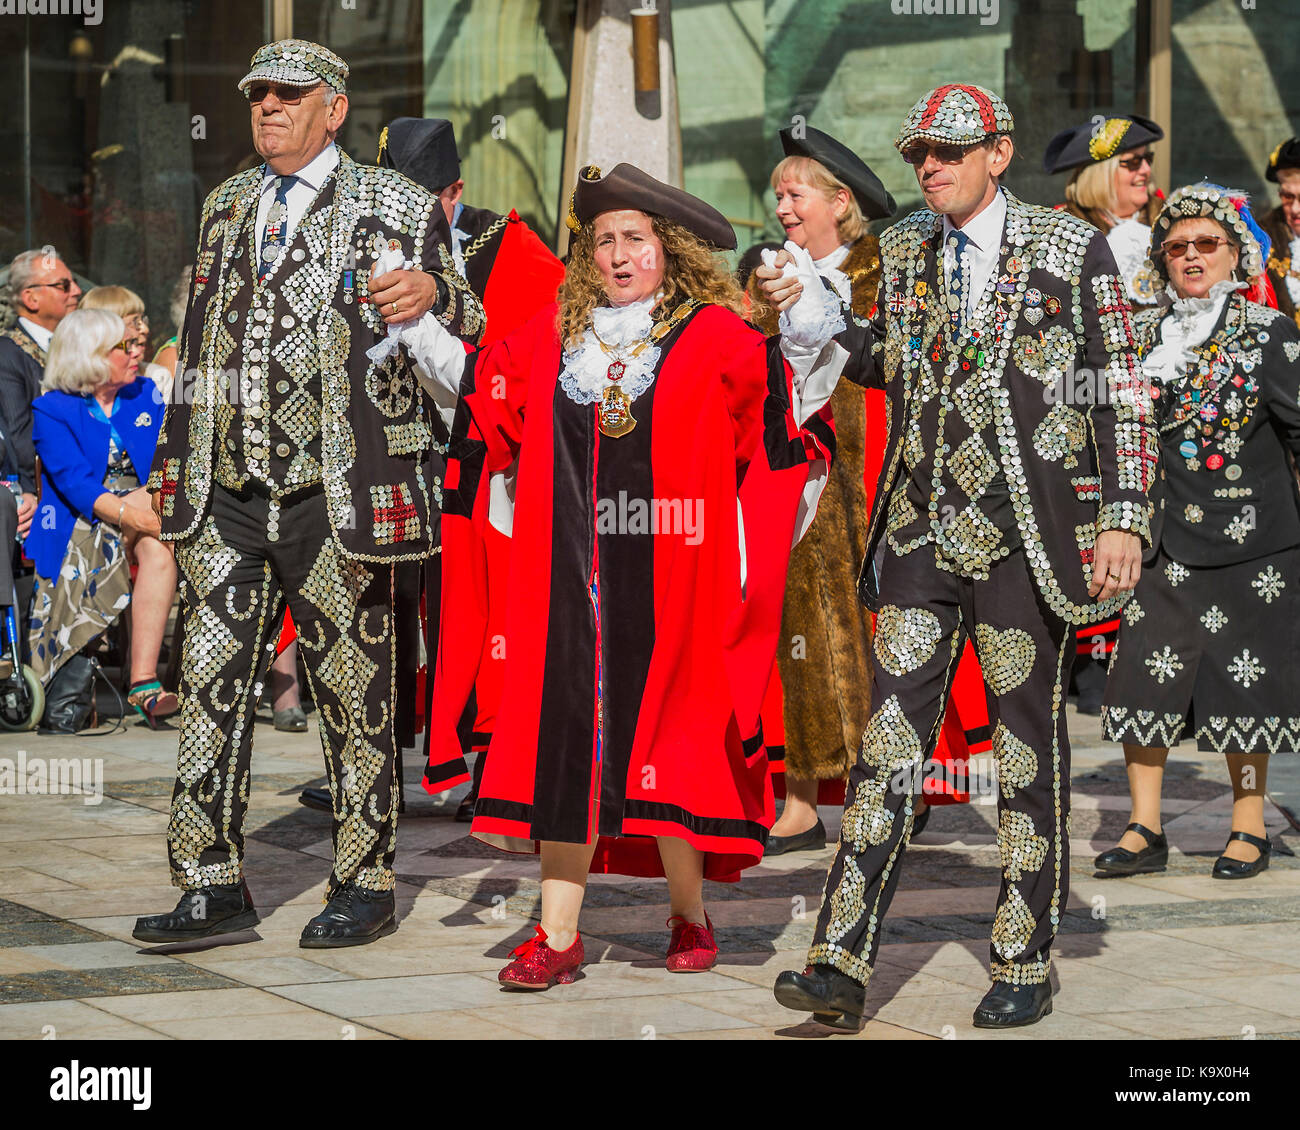 London, UK. 24th September, 2017. The annual Harvest Festival organised by the Pearly Society starts with a ceremony - Stock Image